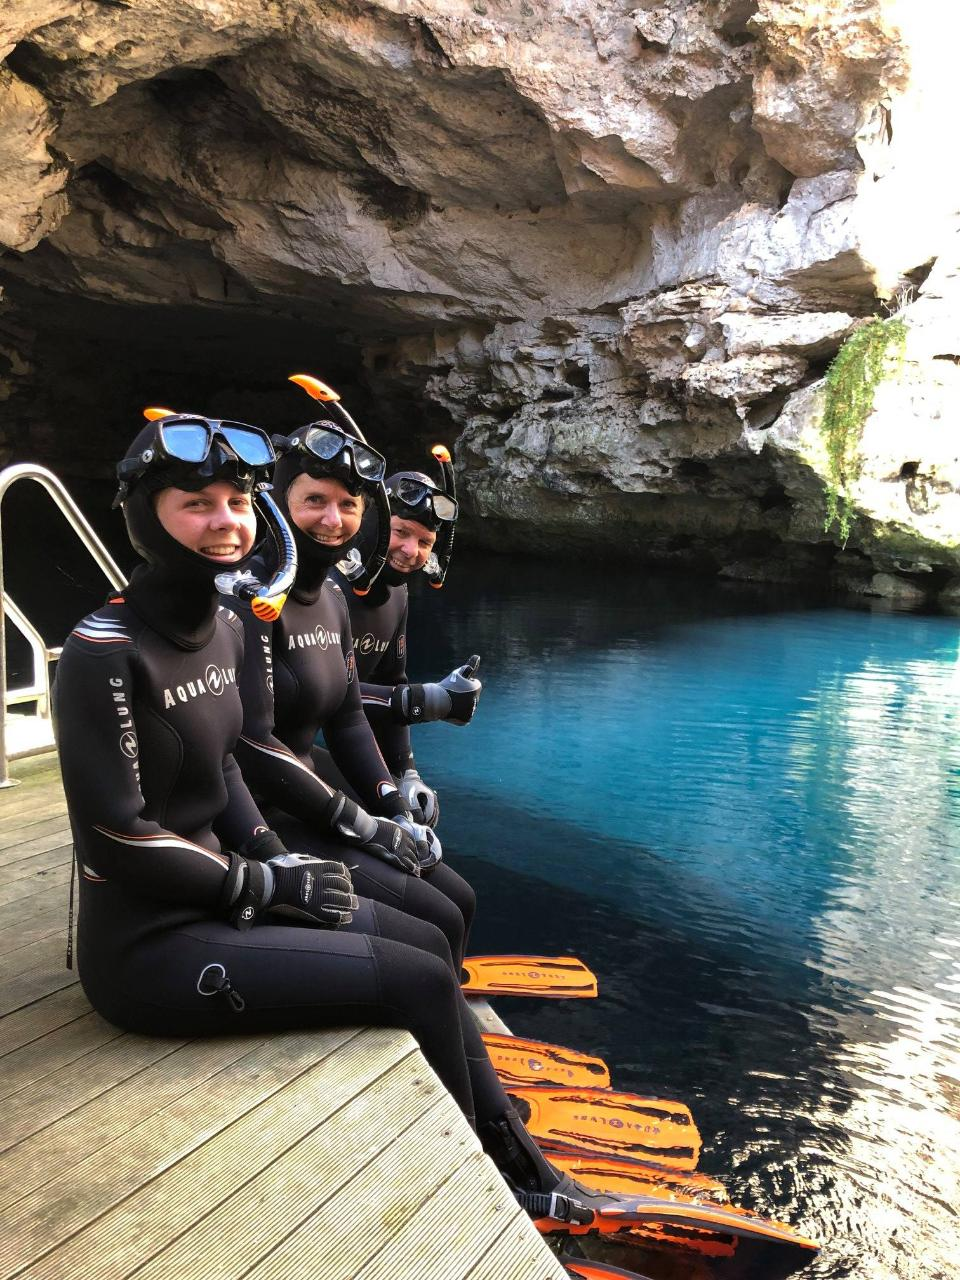 Snorkelling at the Sinkhole